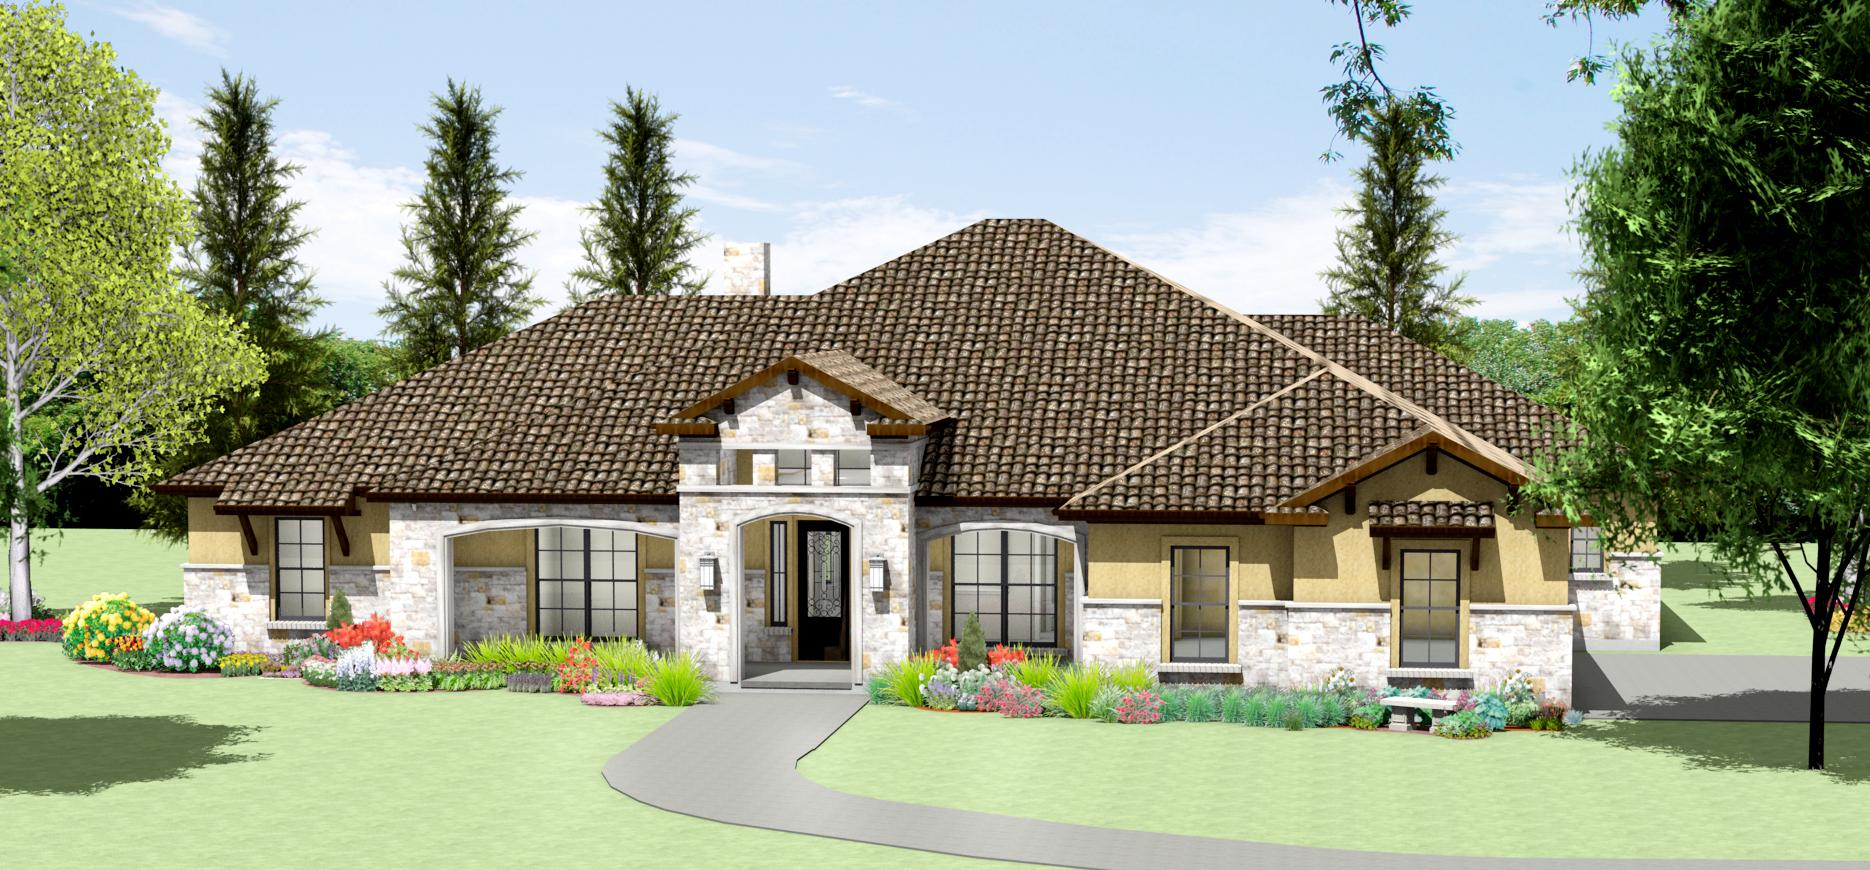 S3450r texas tuscan design texas house plans over 700 Tuscan style house plans